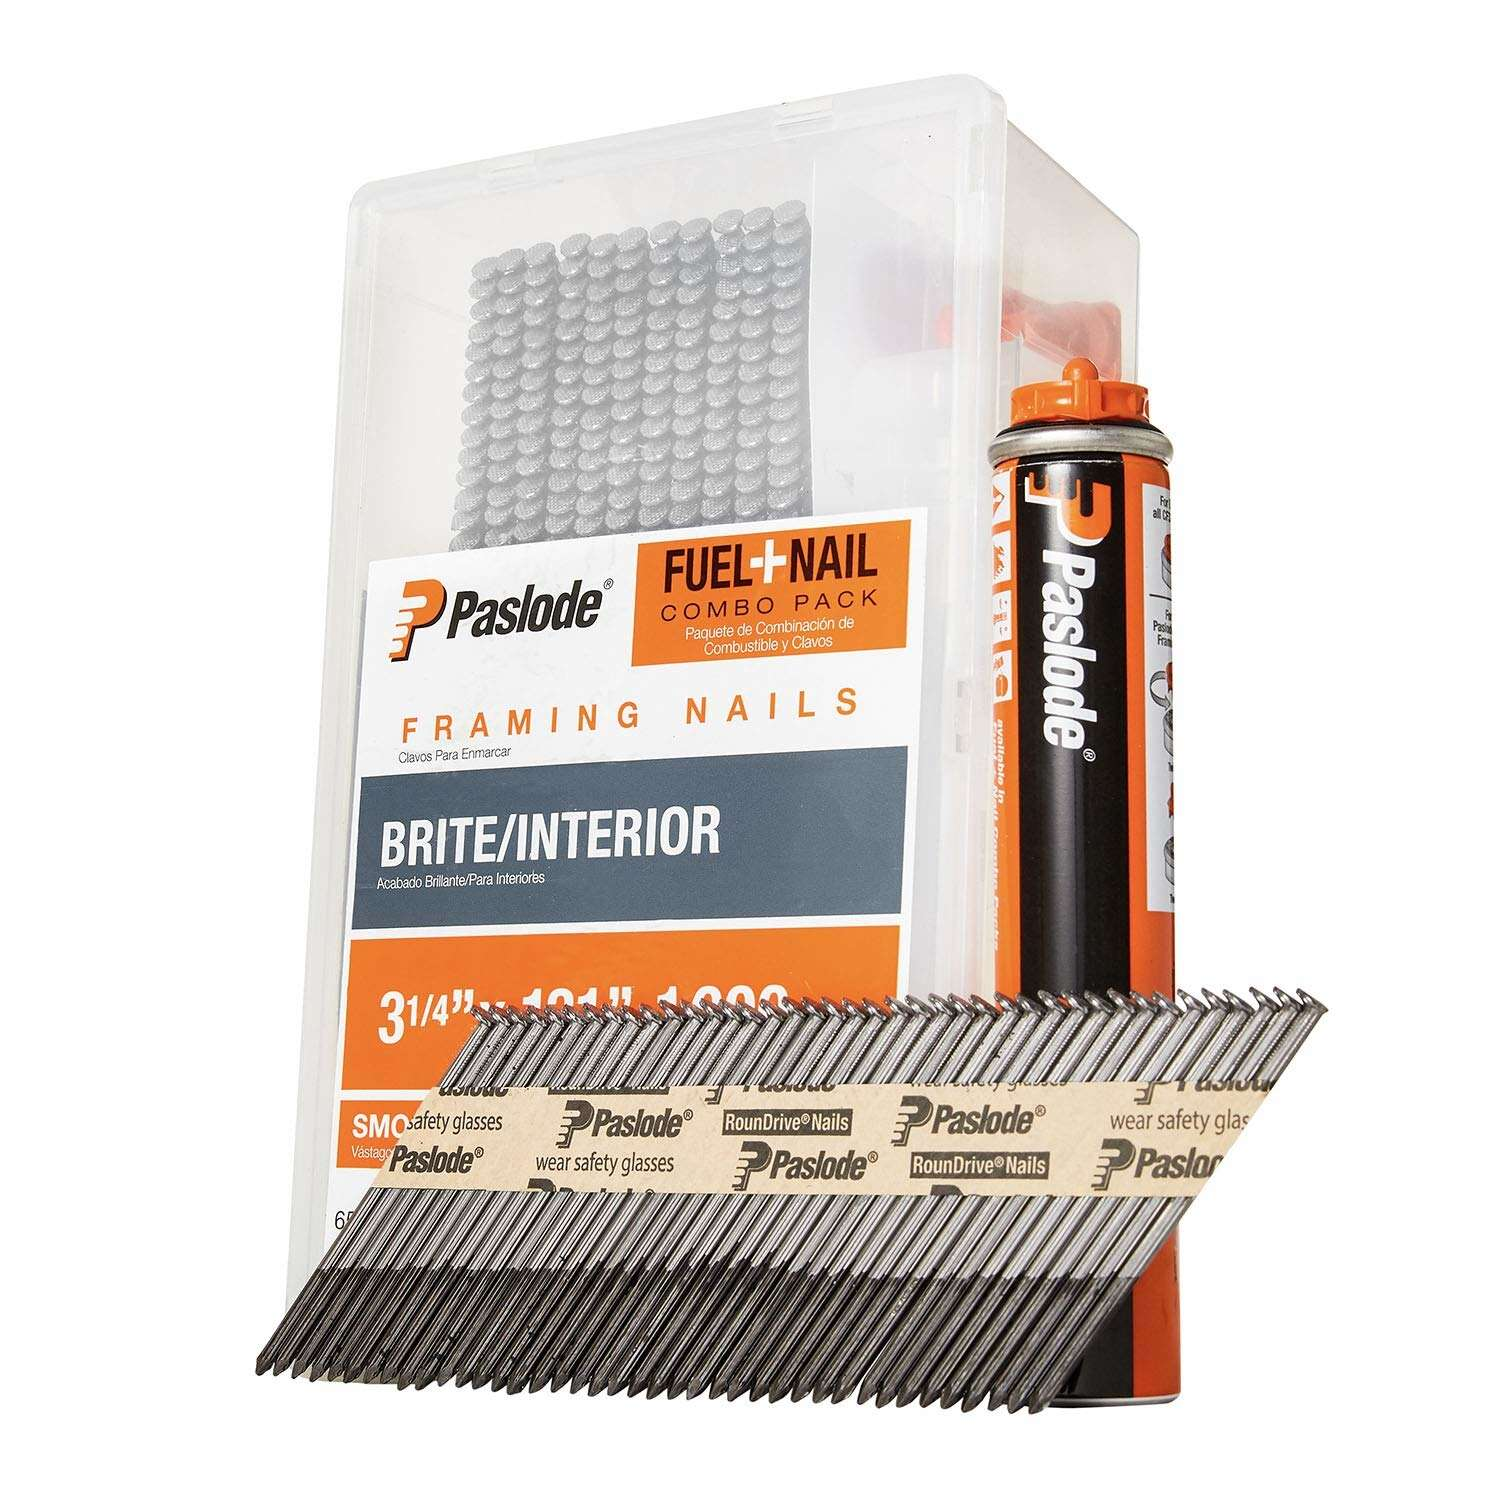 Paslode  3-1/4 in. Angled Strip  Fuel and Nail Kit  30 deg. Smooth Shank  1000 pk